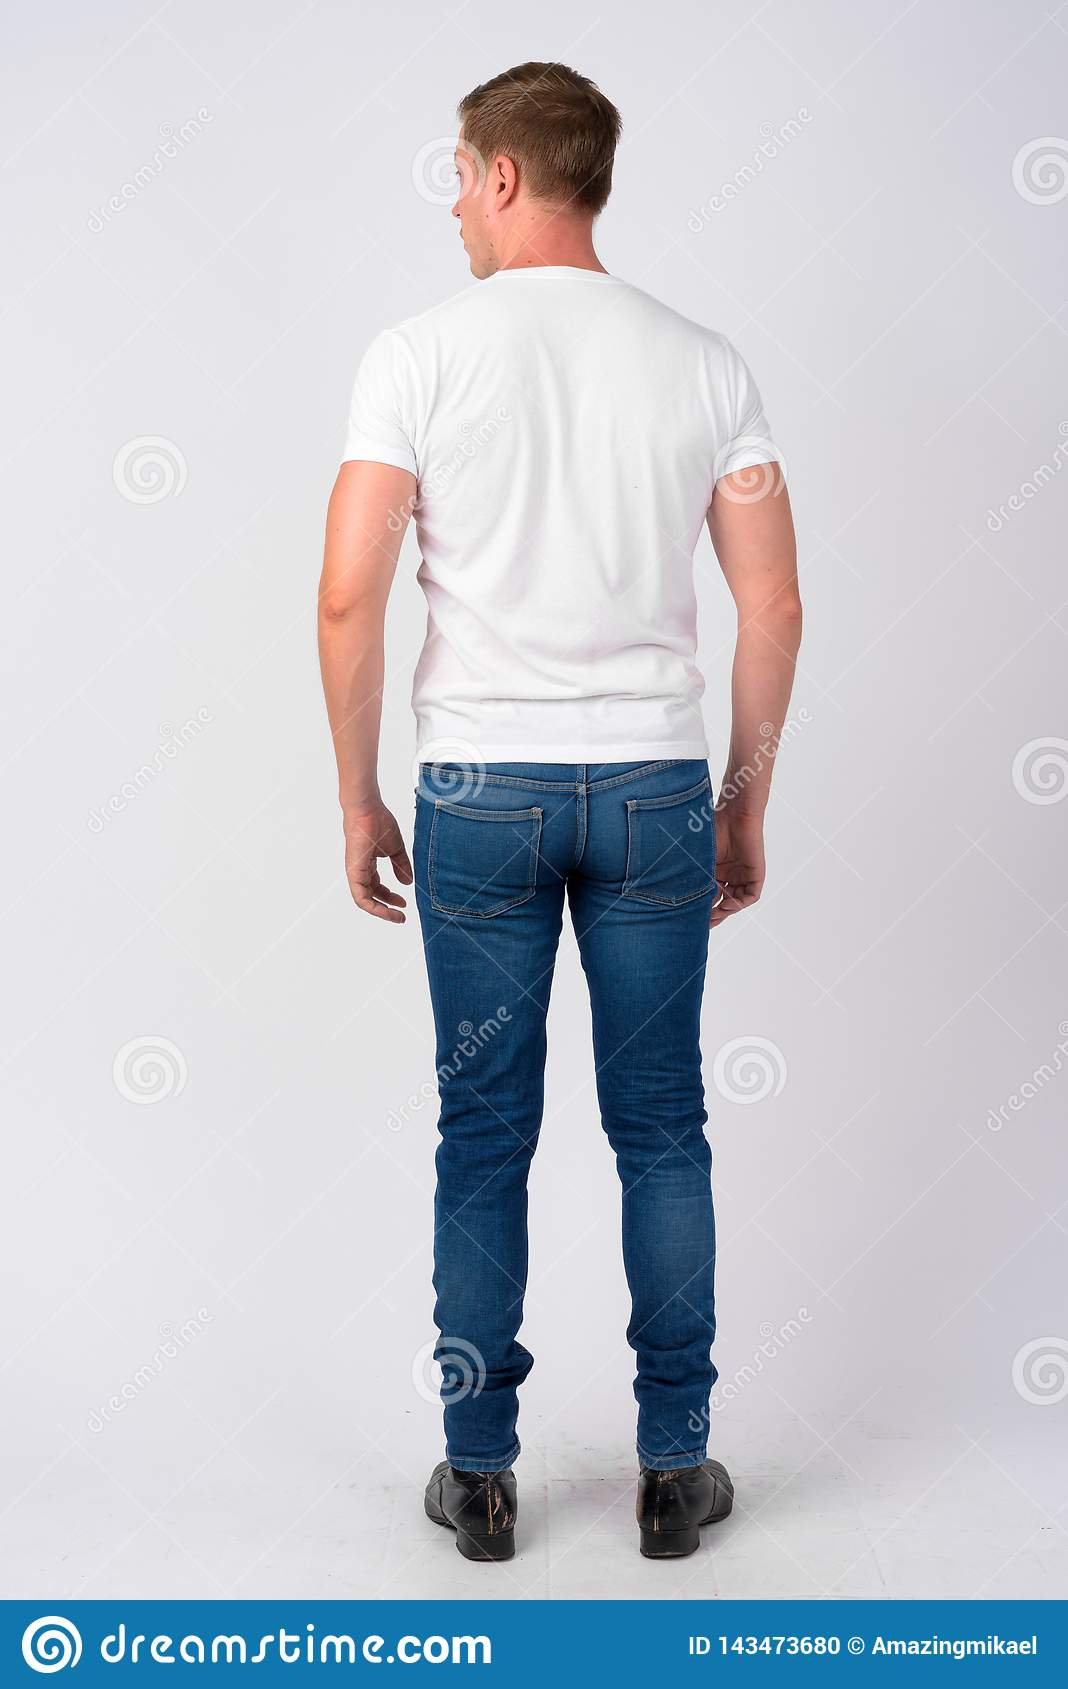 Full body shot rear view of young handsome man